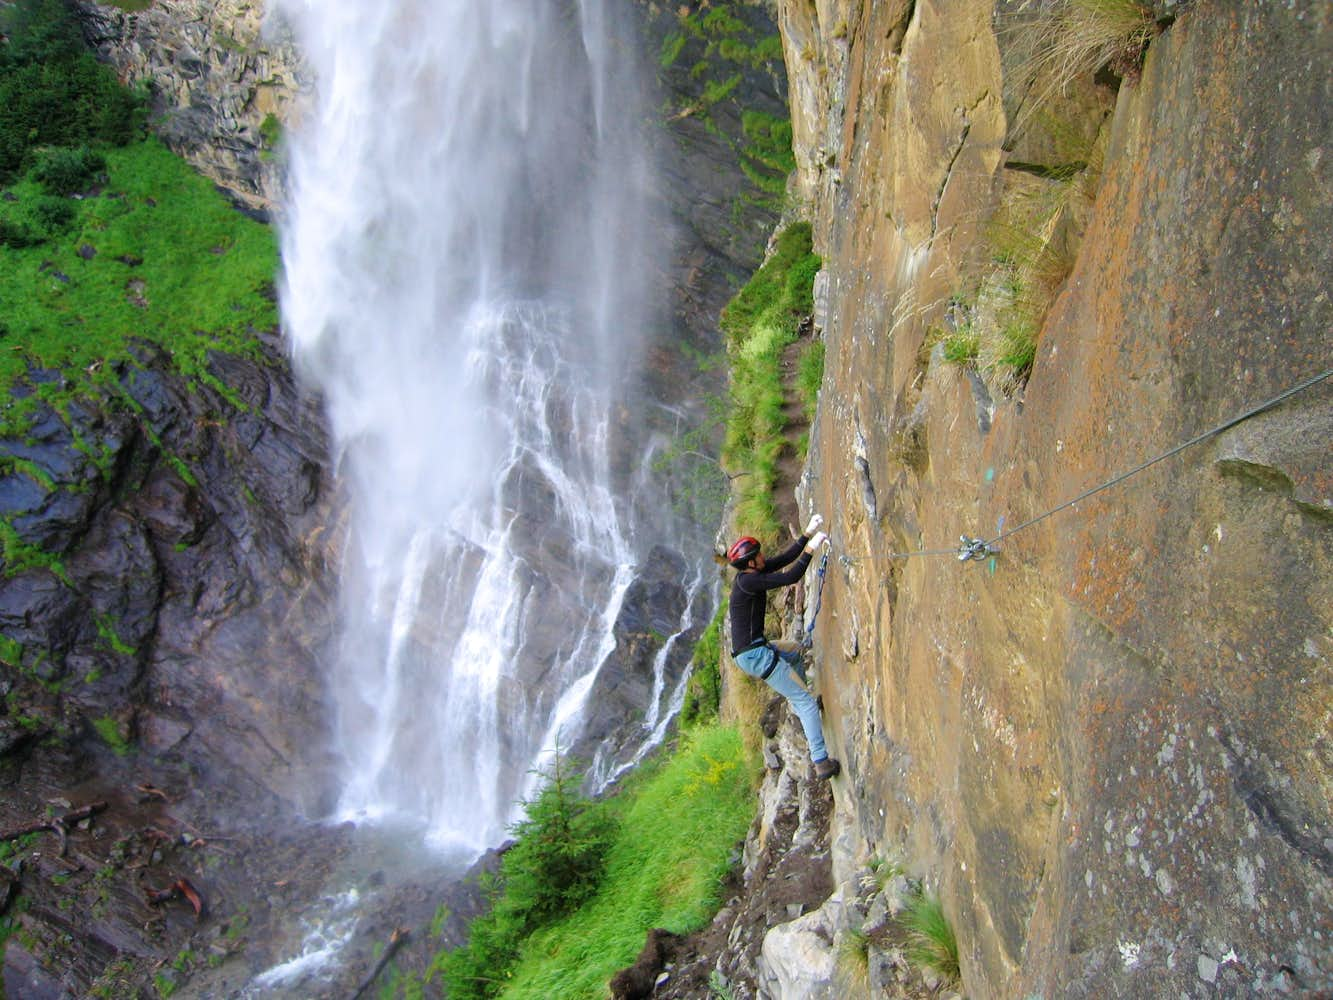 Klettersteig Fallbach : The first difficulties on fallbach klettersteig : photos diagrams